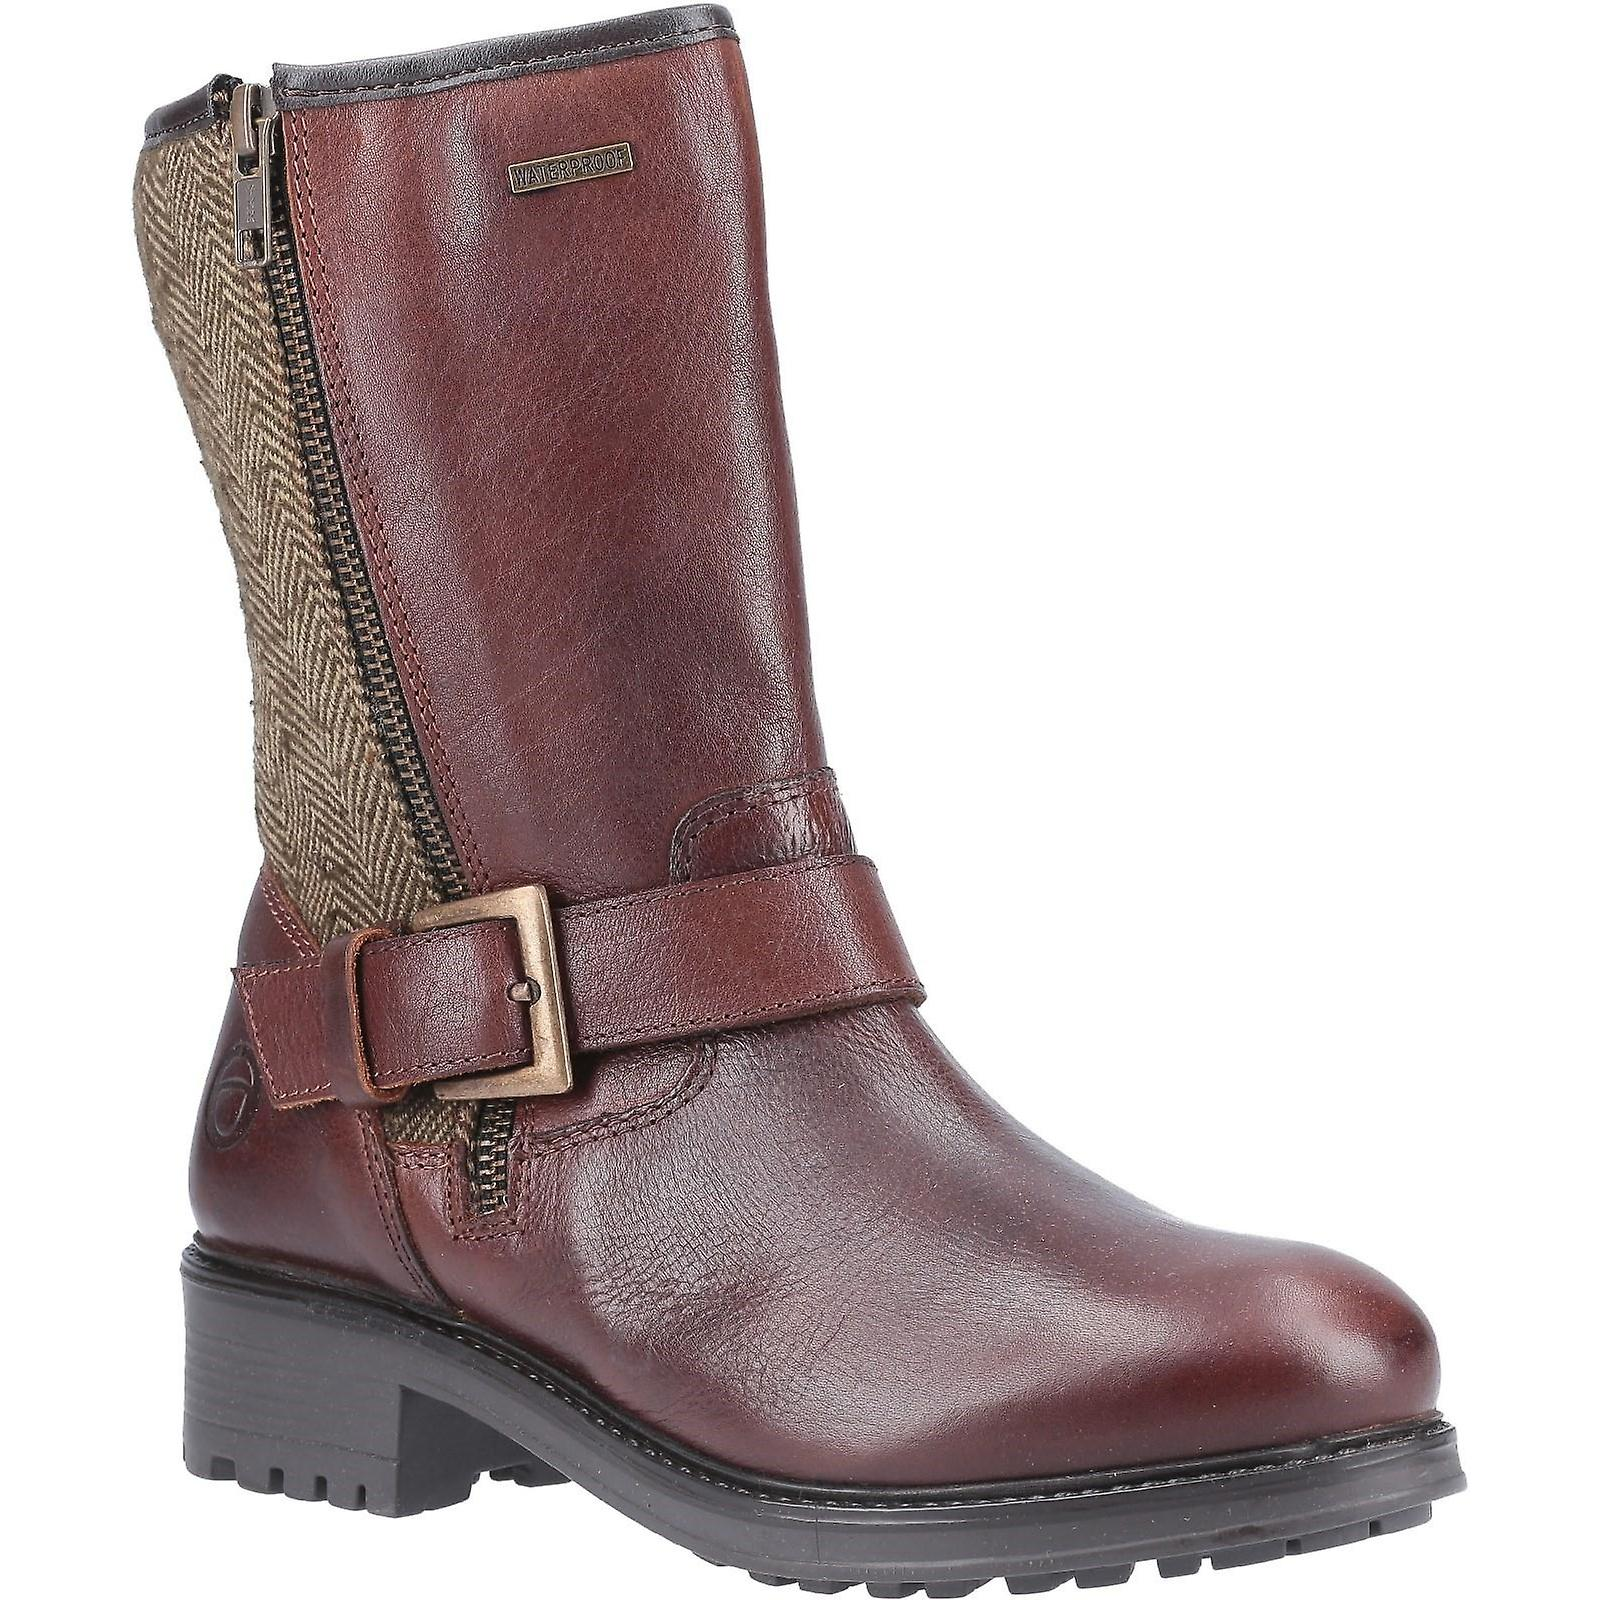 Cotswold Womens/Ladies Twigworth Leather Mid Calf Zip Boots wNaKU